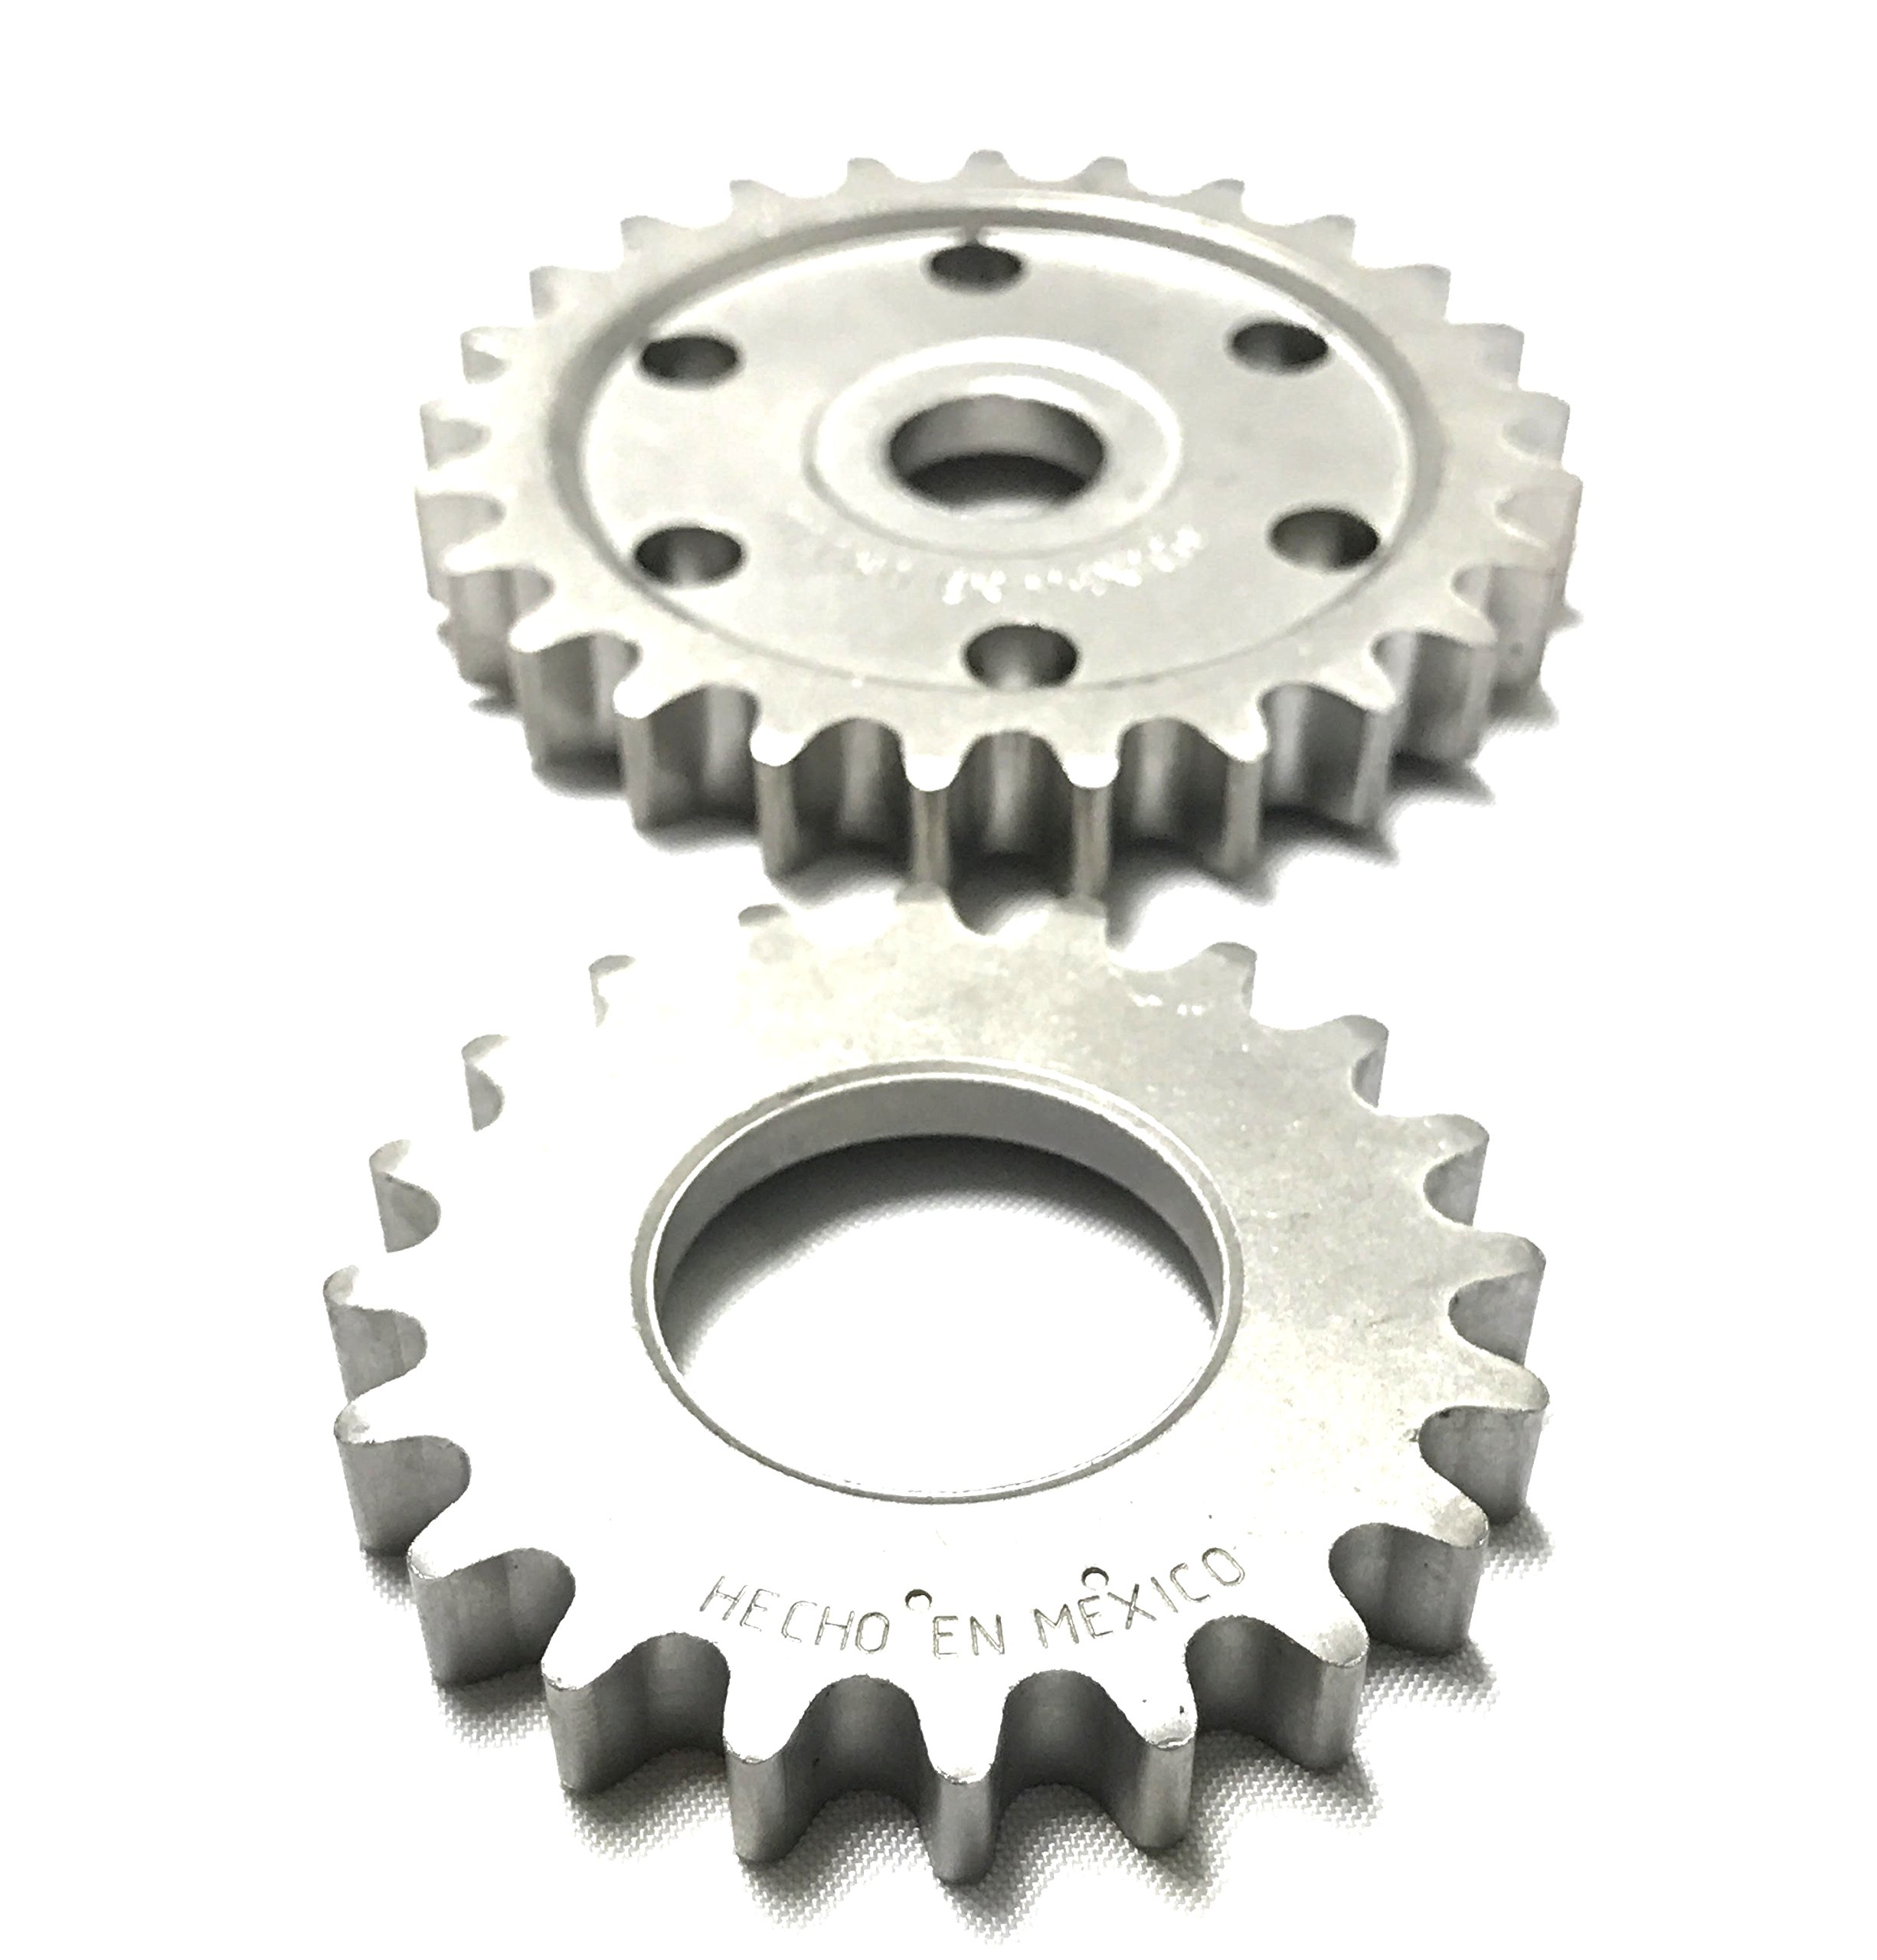 Diamond Power Timing Chain Kit Works With Ford Explorer Mustang 2004 4 0 Ranger Mazda B4000 Land Rover 40l Sohc 2001 02 03 04 05 06 07 08 09 2010 Ford40b Sets